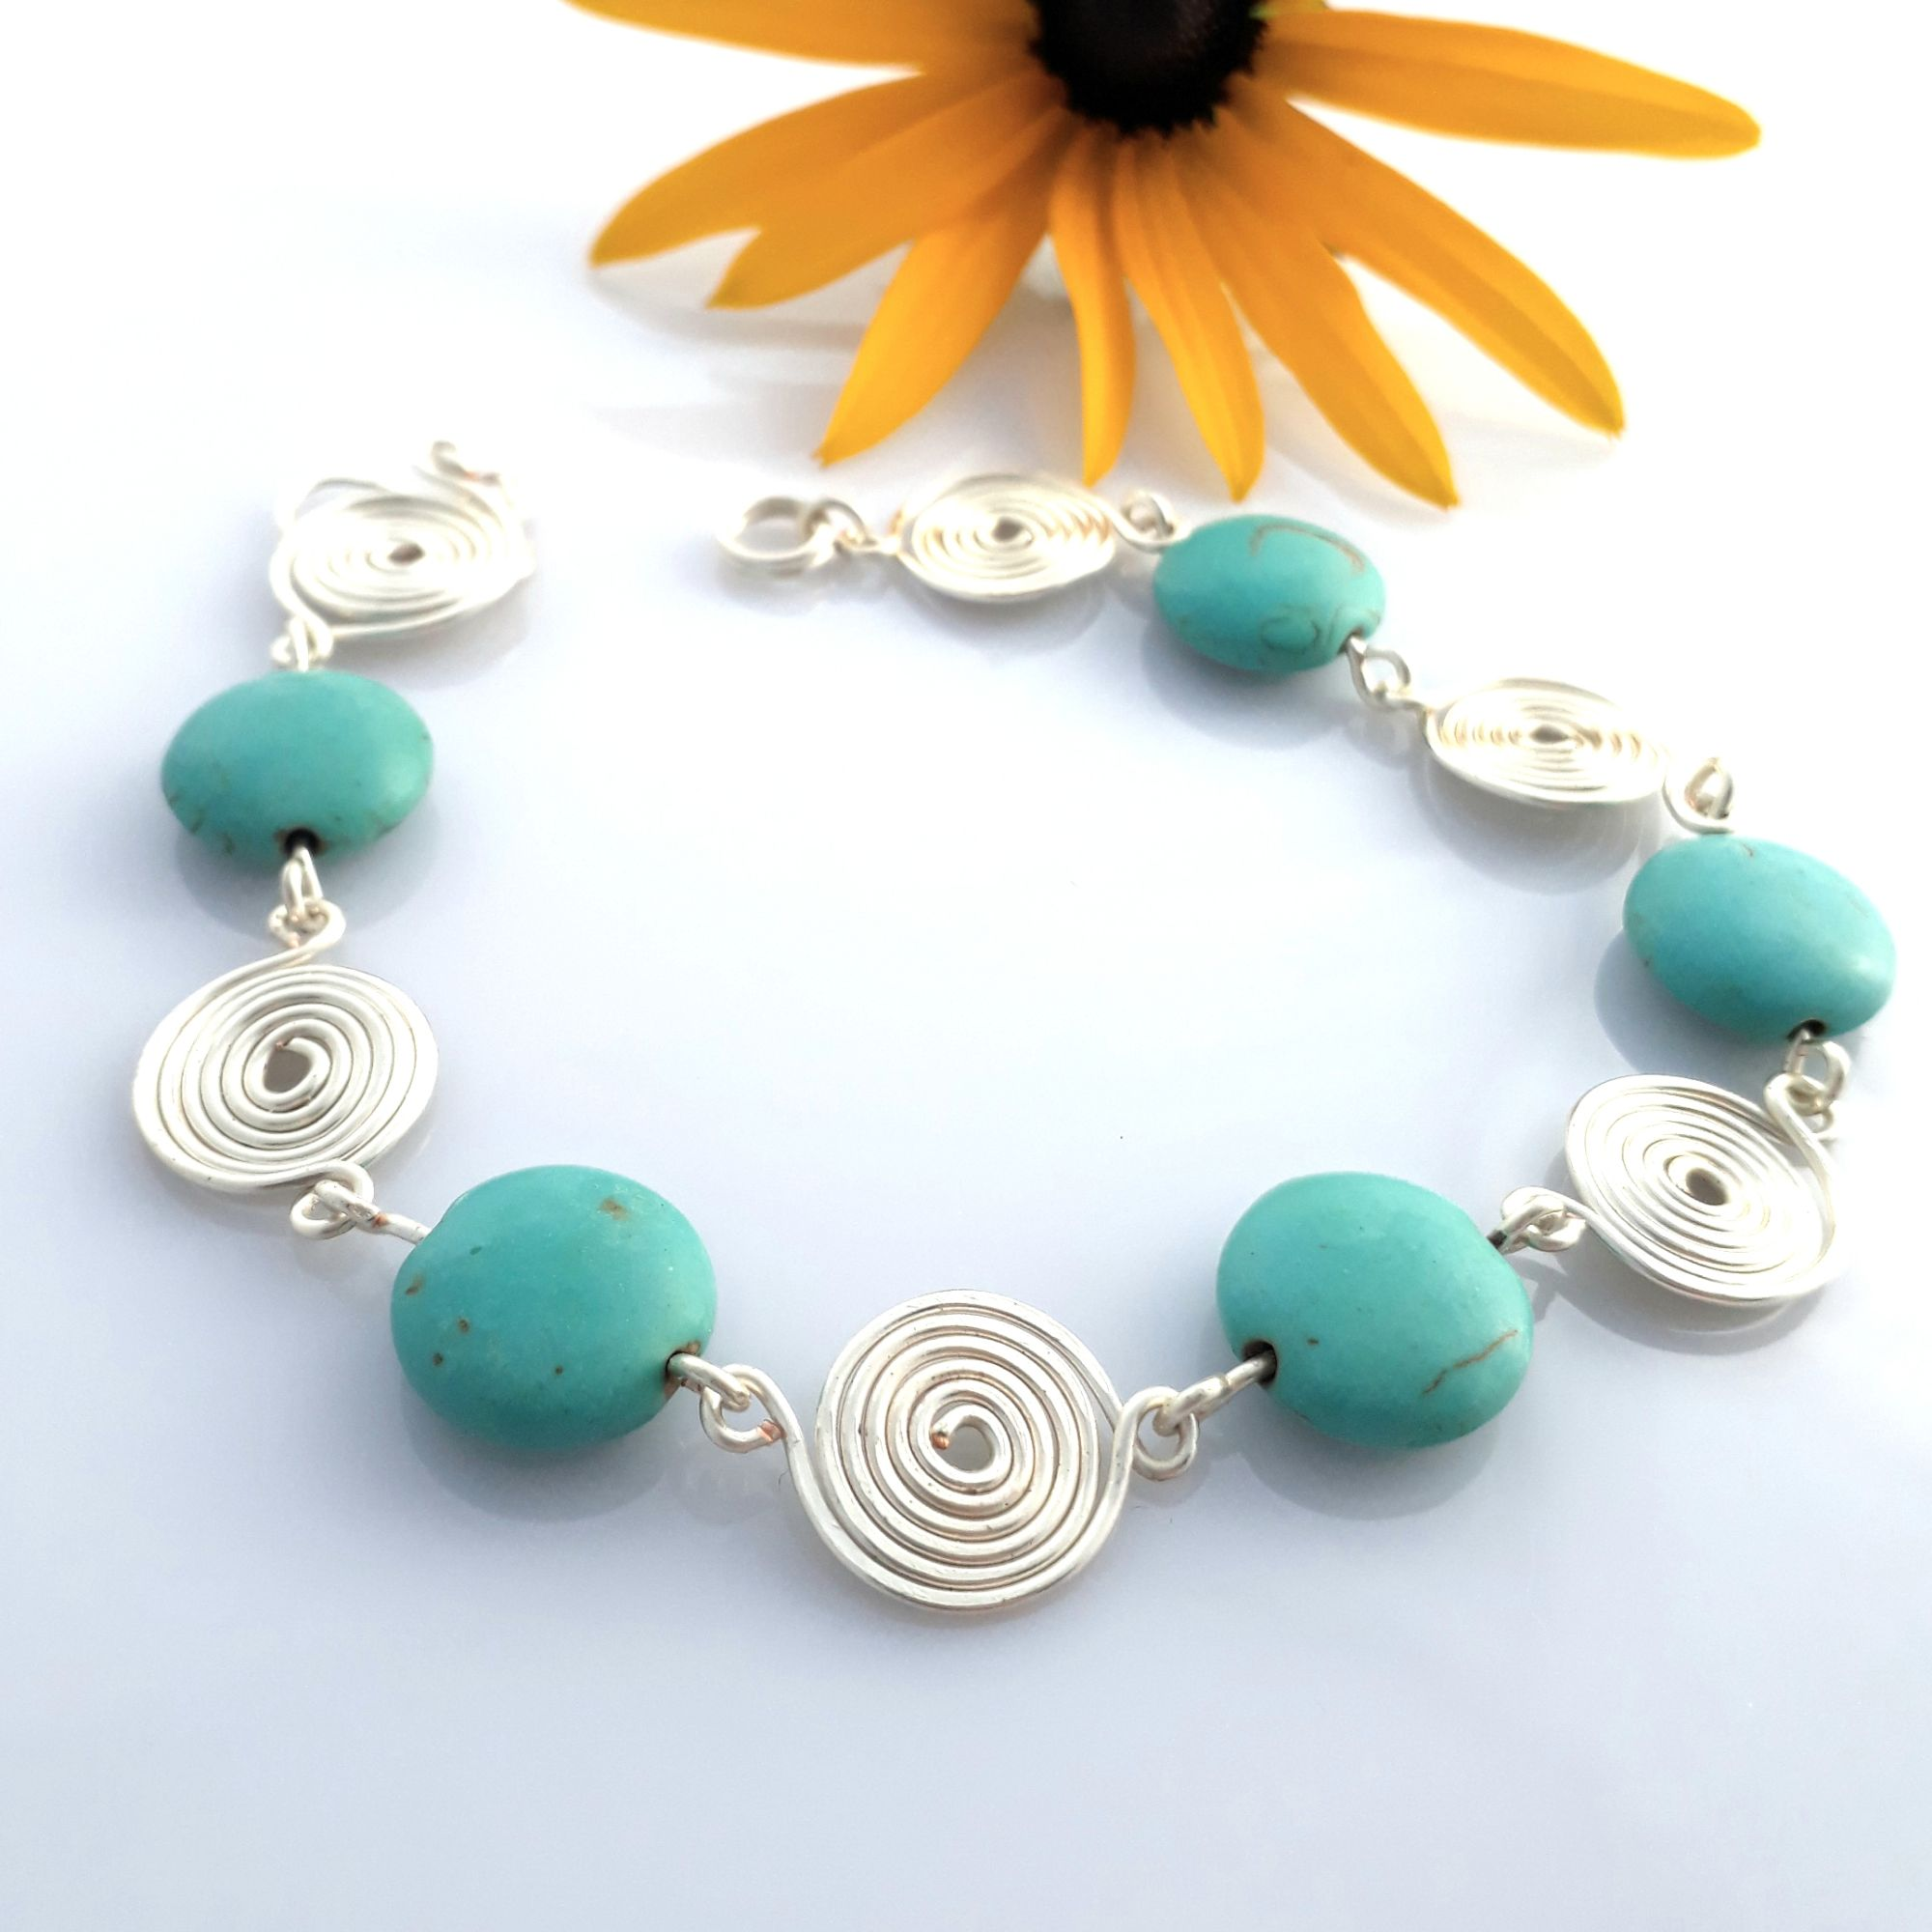 Turquoise silver spiral bracelet